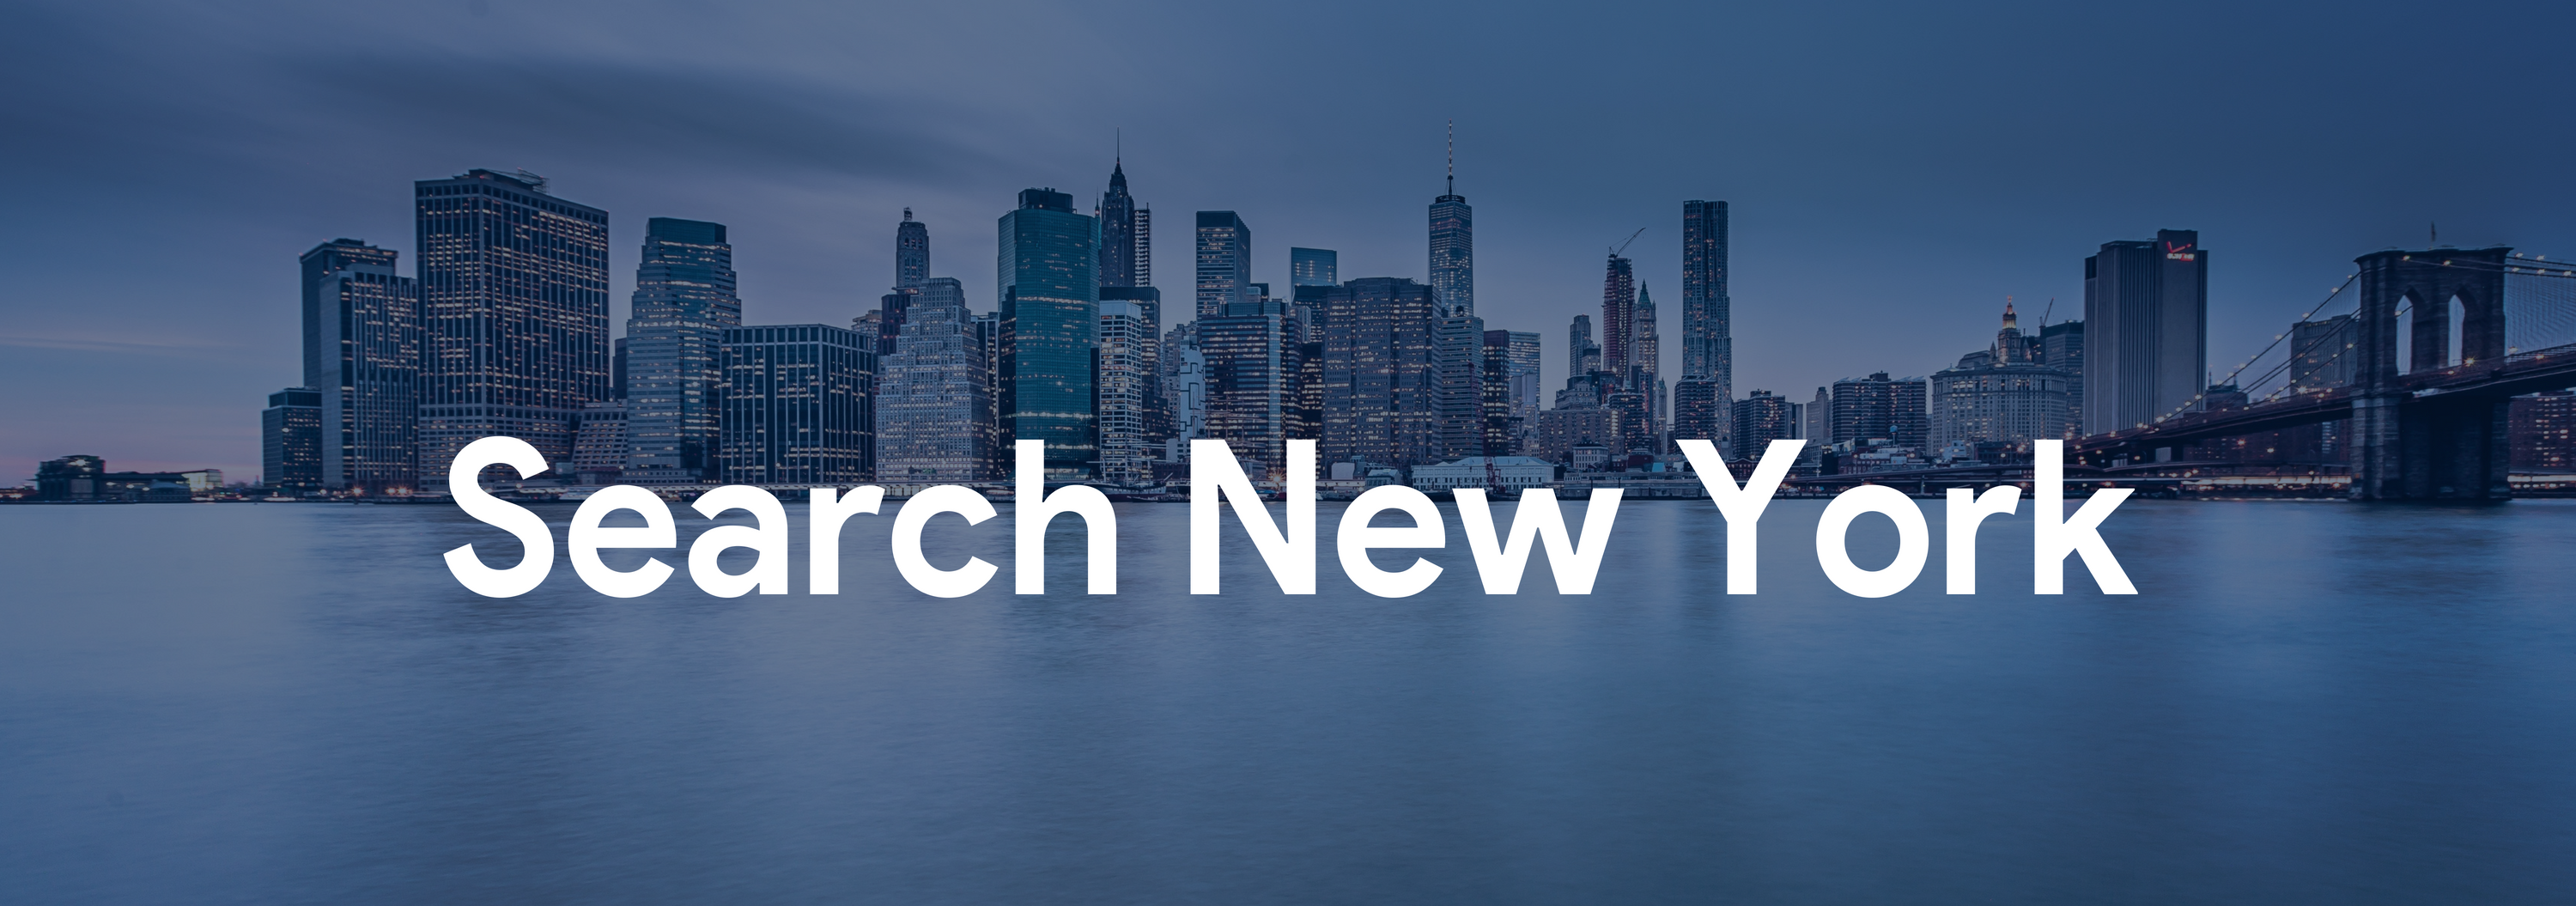 Search New York